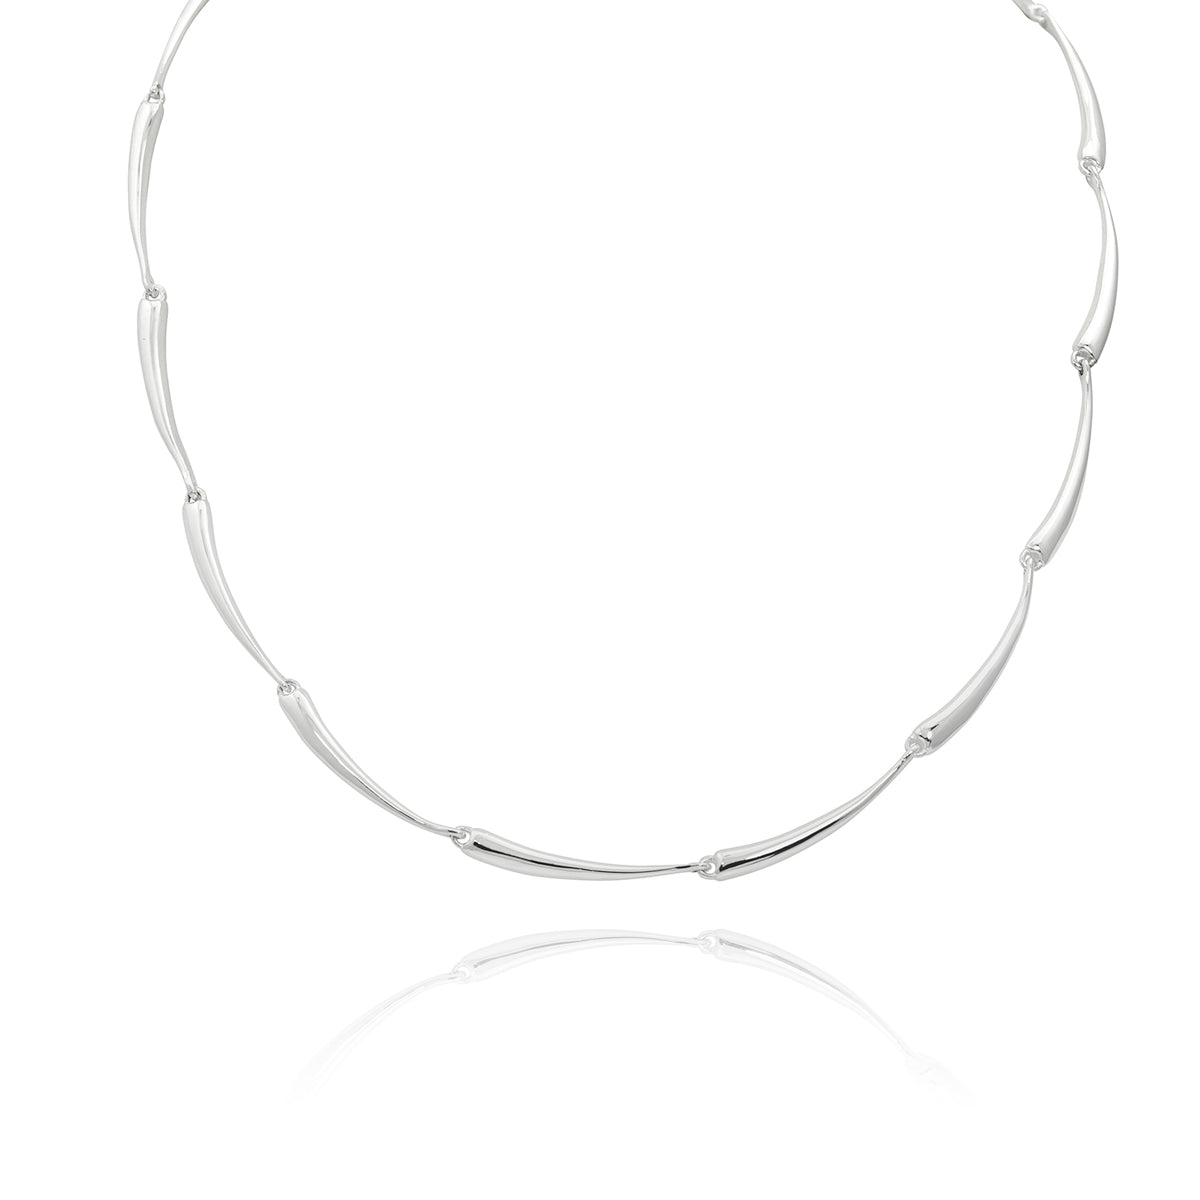 ZN A73/17 TAPERED LINK NECKLACE